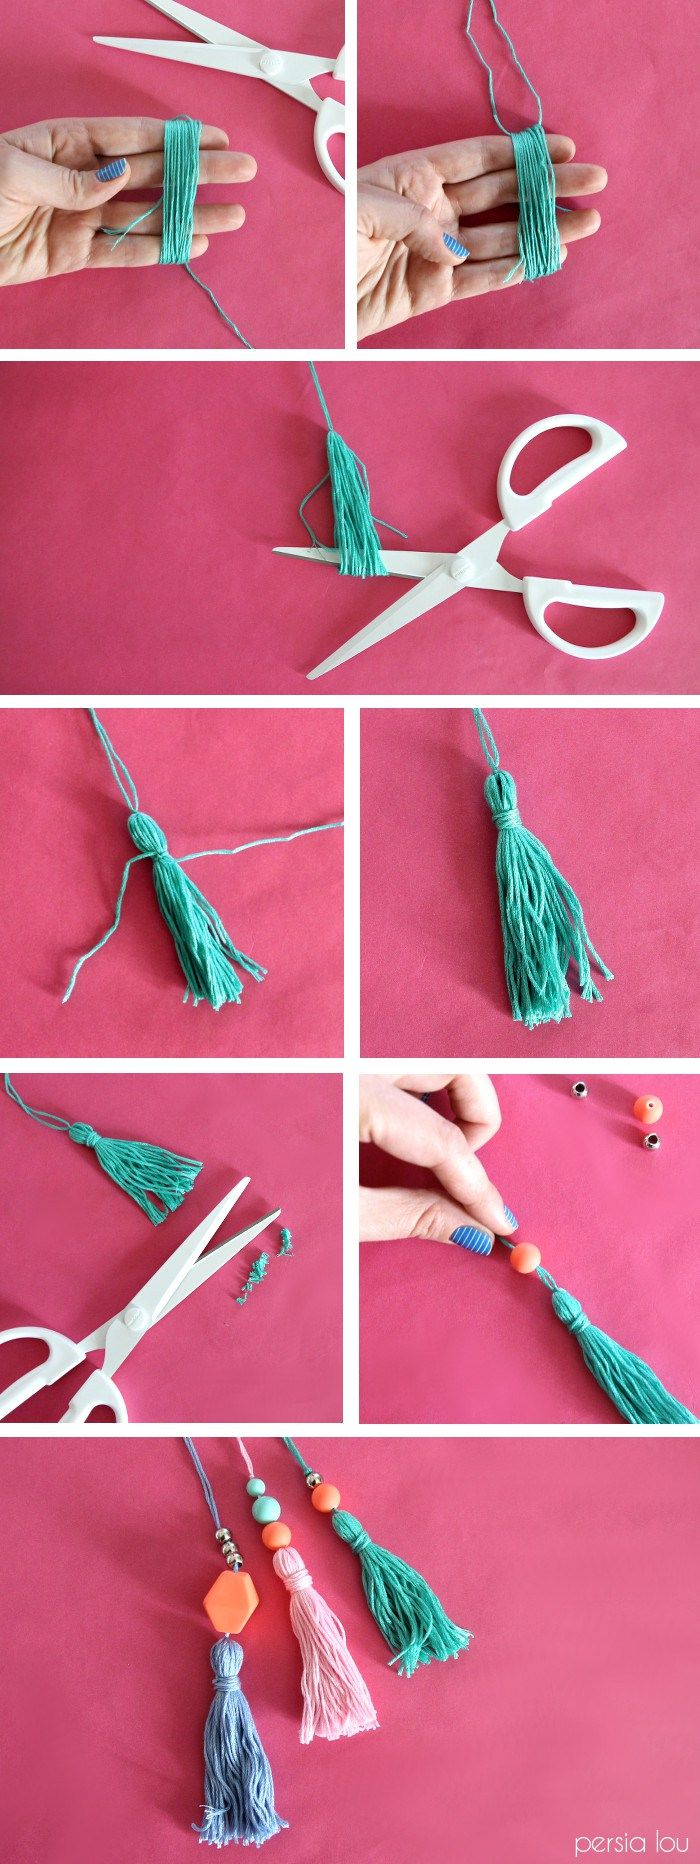 How to make beaded tassels - add to a bag!                                                                                                                                                                                 More